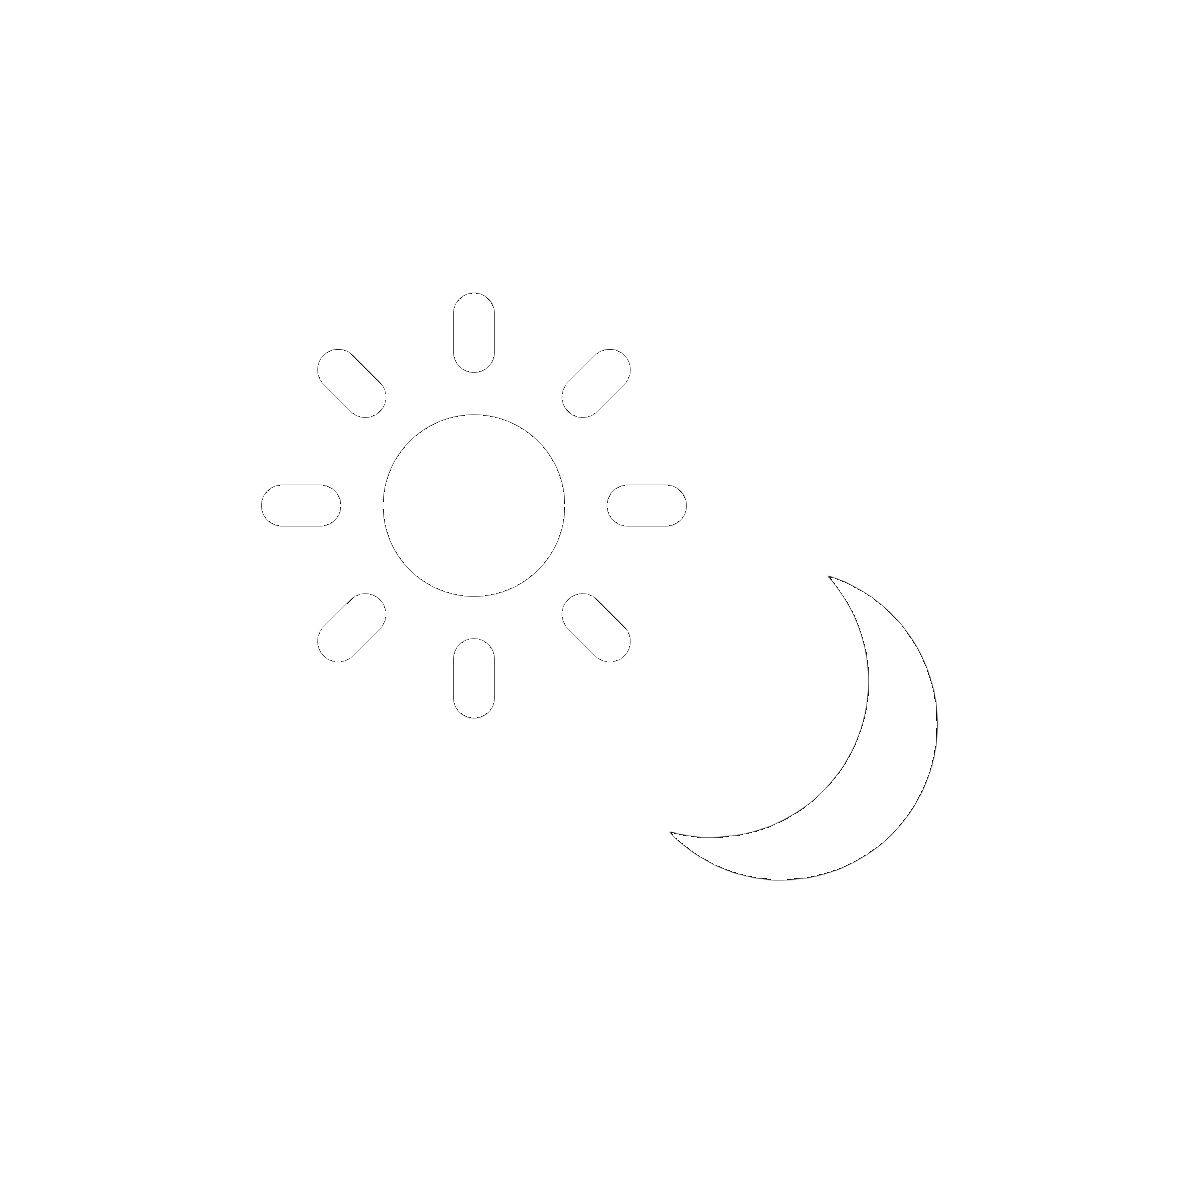 Symbol The Sun and Moon